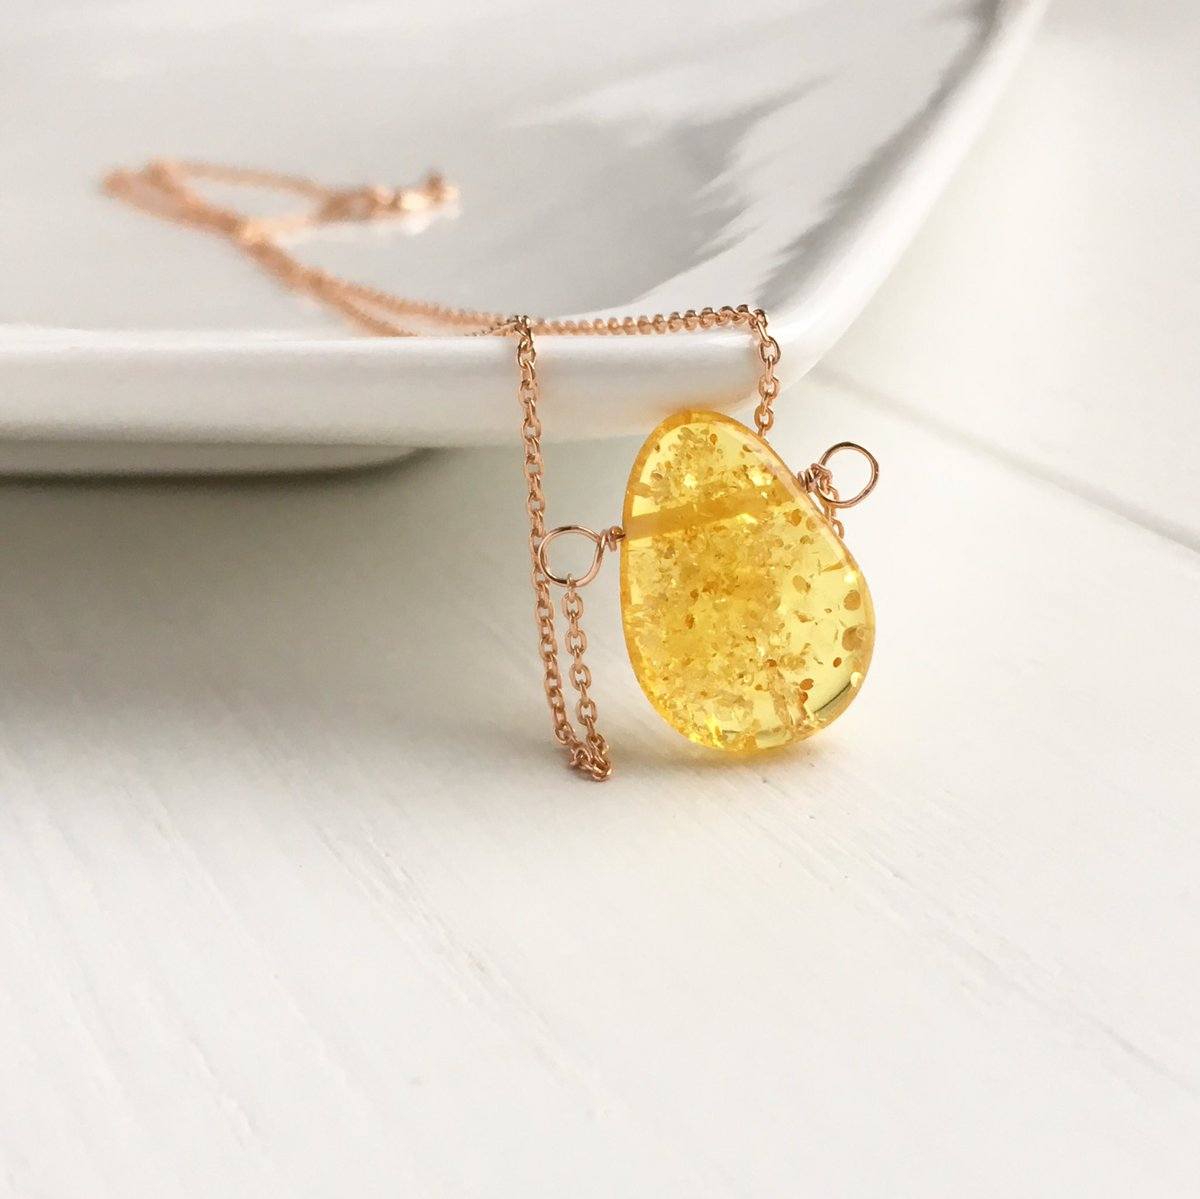 The most beautiful amber. It's also the most healing.    https:// etsy.me/2EfPznO  &nbsp;      #madebymissm #Londonislovinit #craftbuzz #necklaces #shopsmall #etsyhandmade #etsyjewelry <br>http://pic.twitter.com/Qm1GeKIFcO